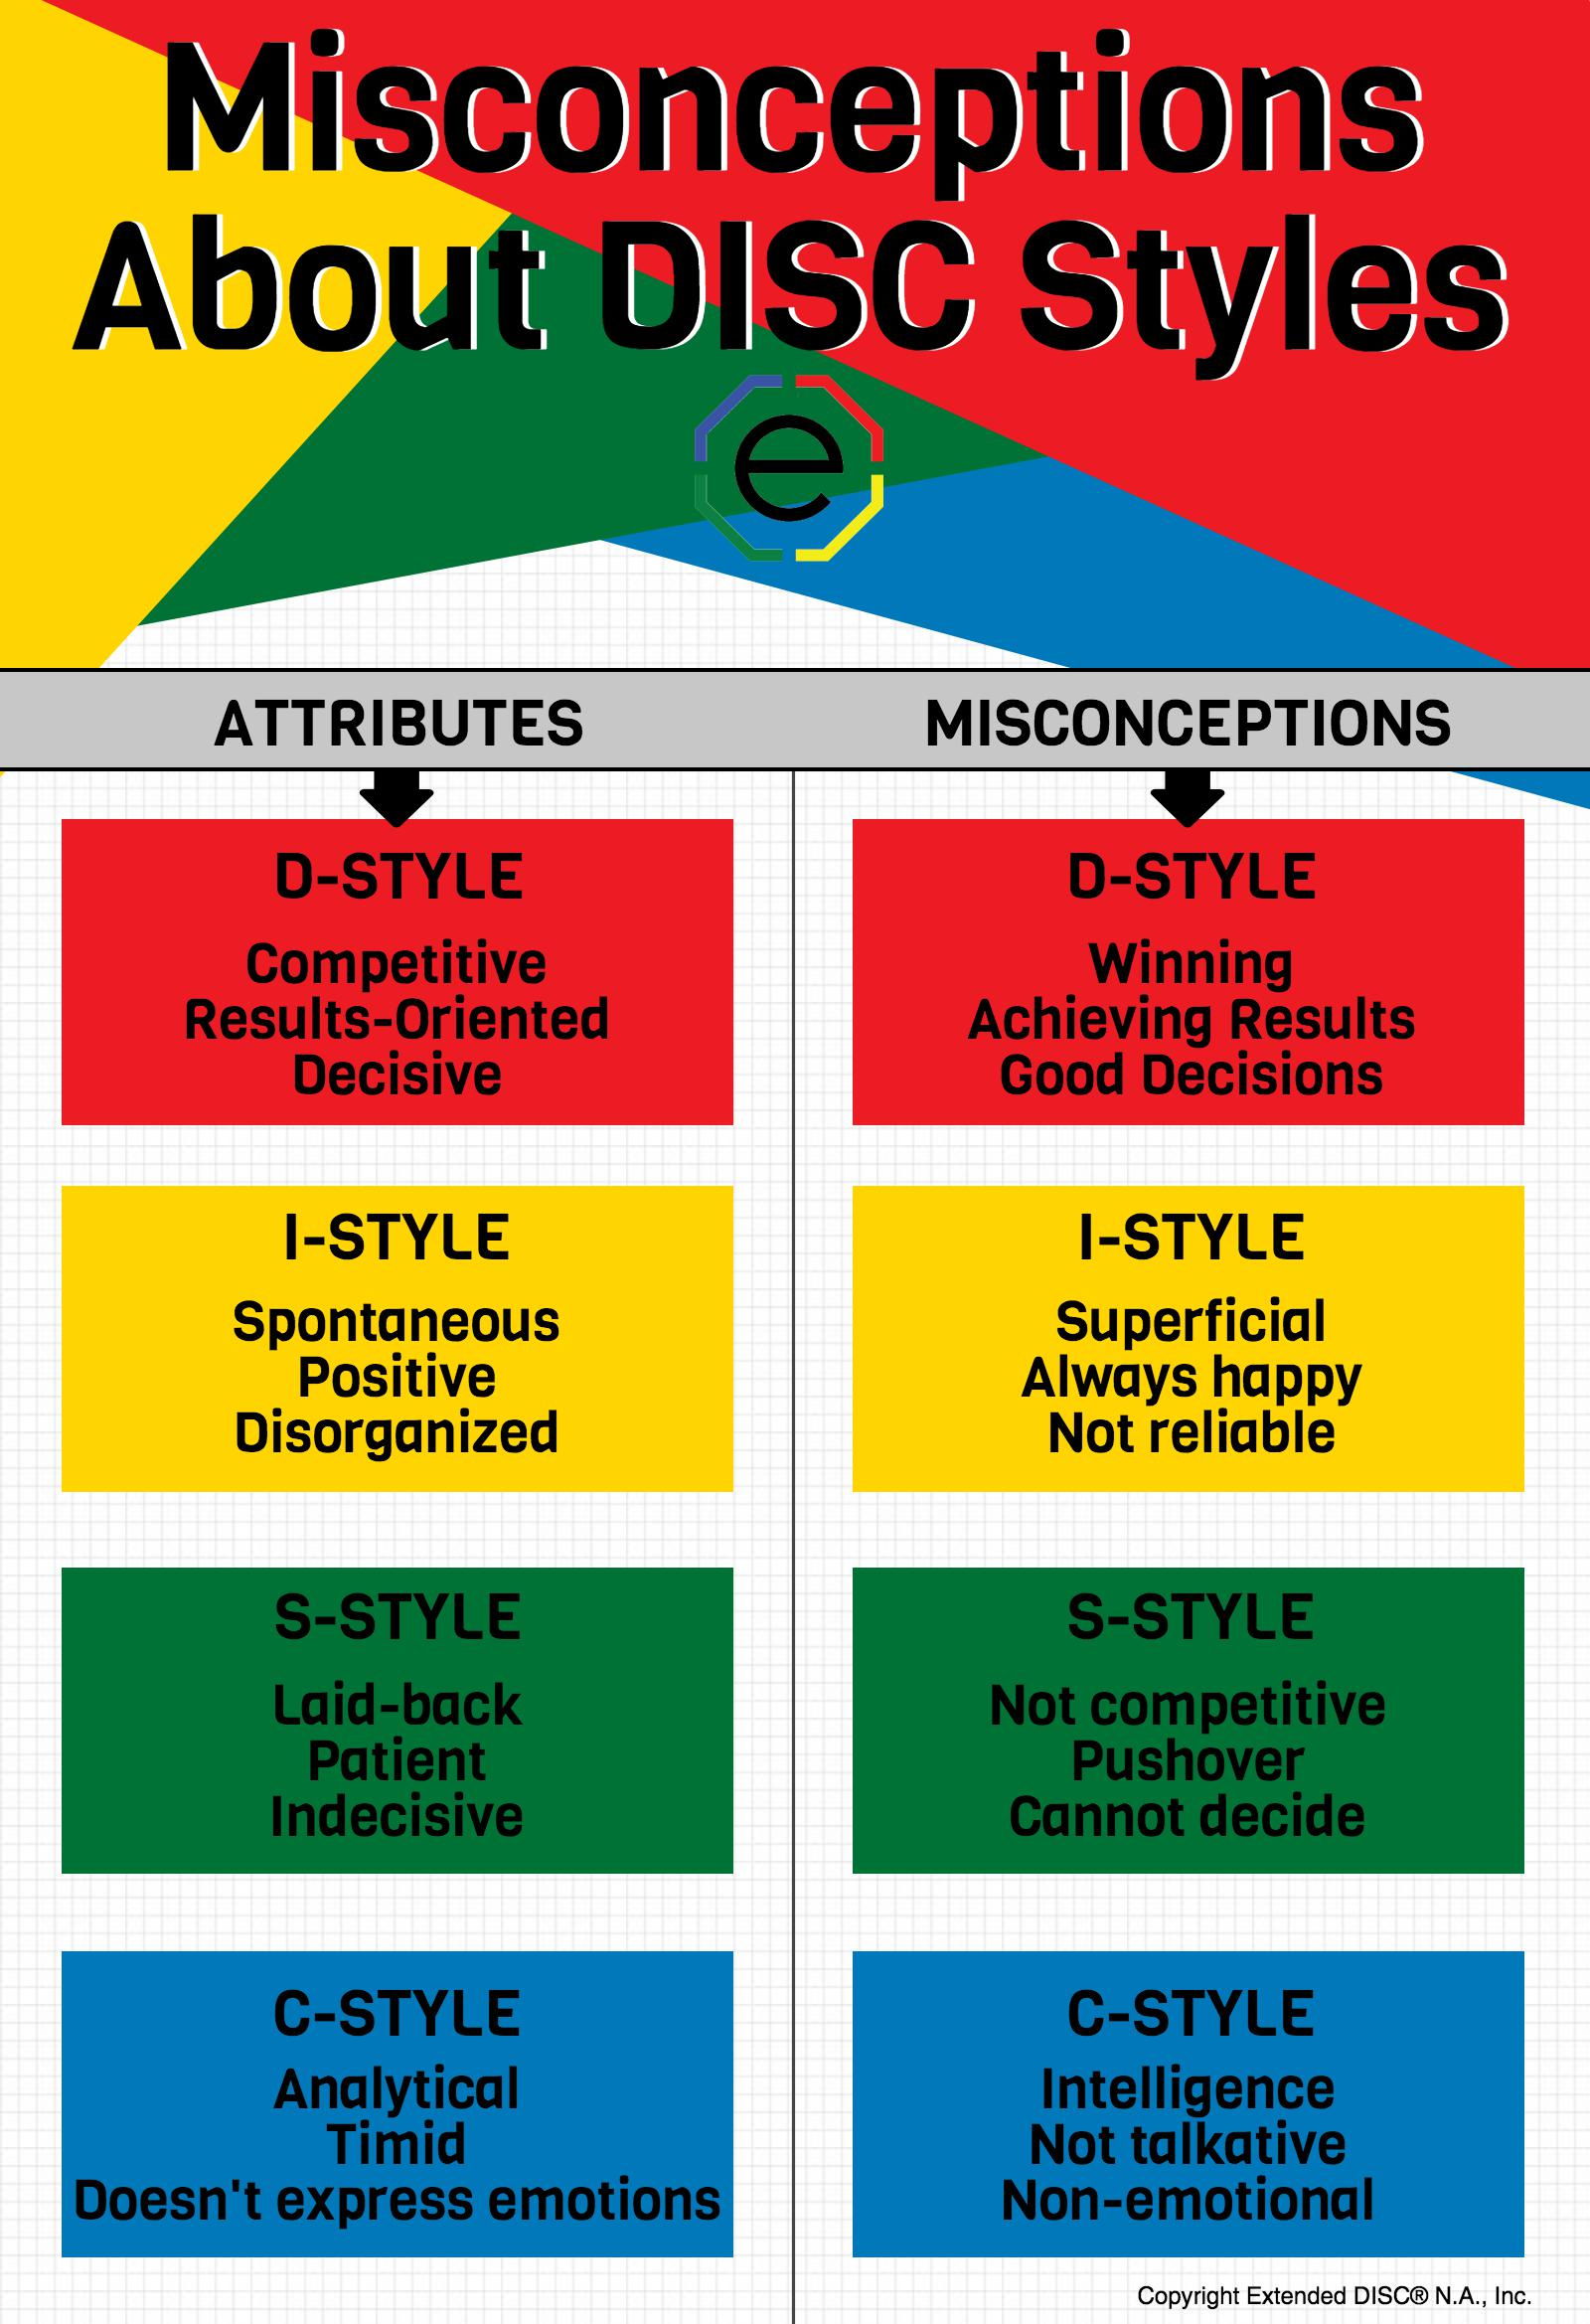 Overcoming Misconceptions About Disc Styles